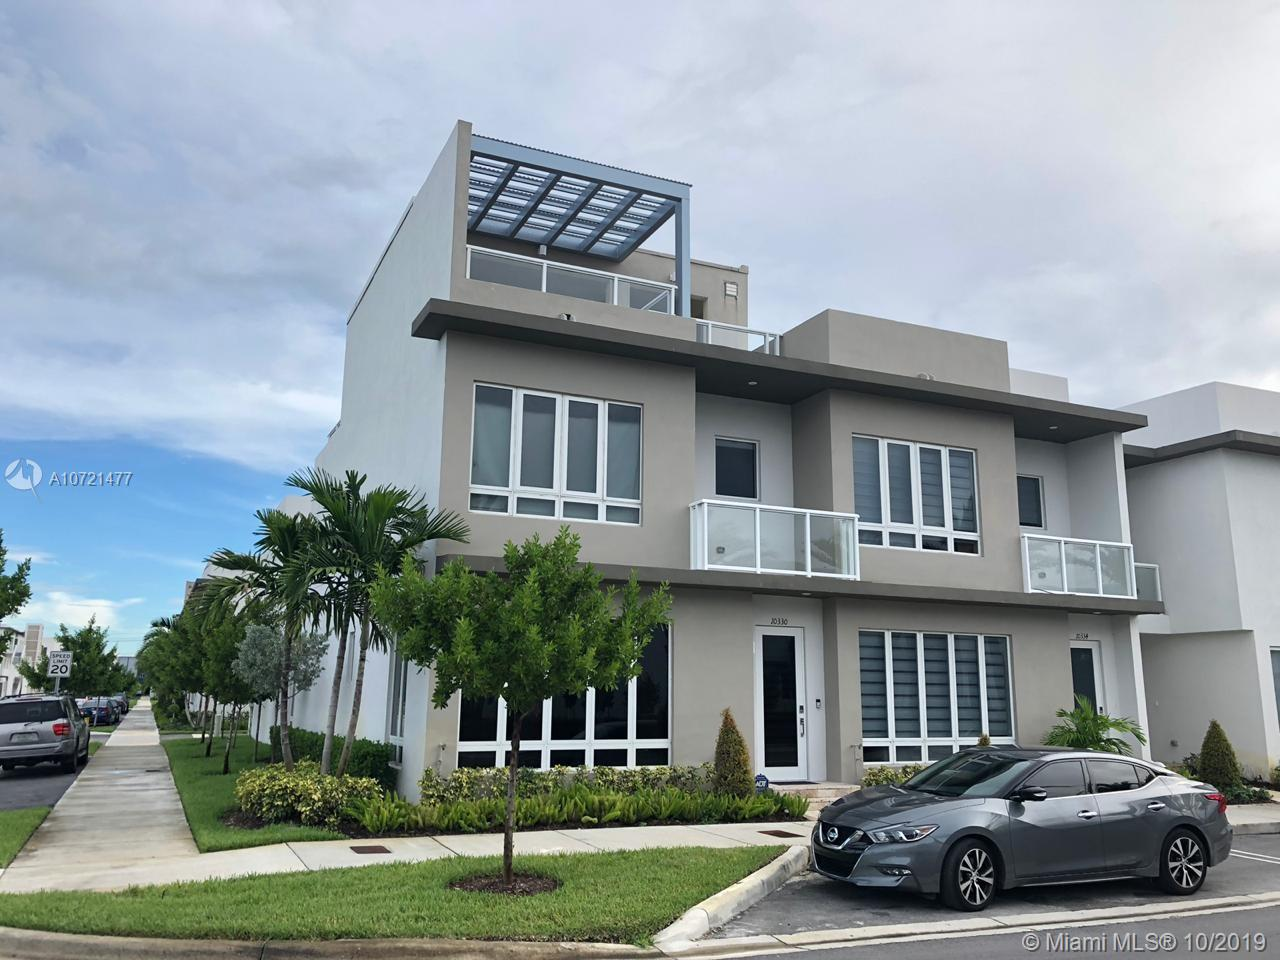 10330 NW 66th St  For Sale A10721477, FL